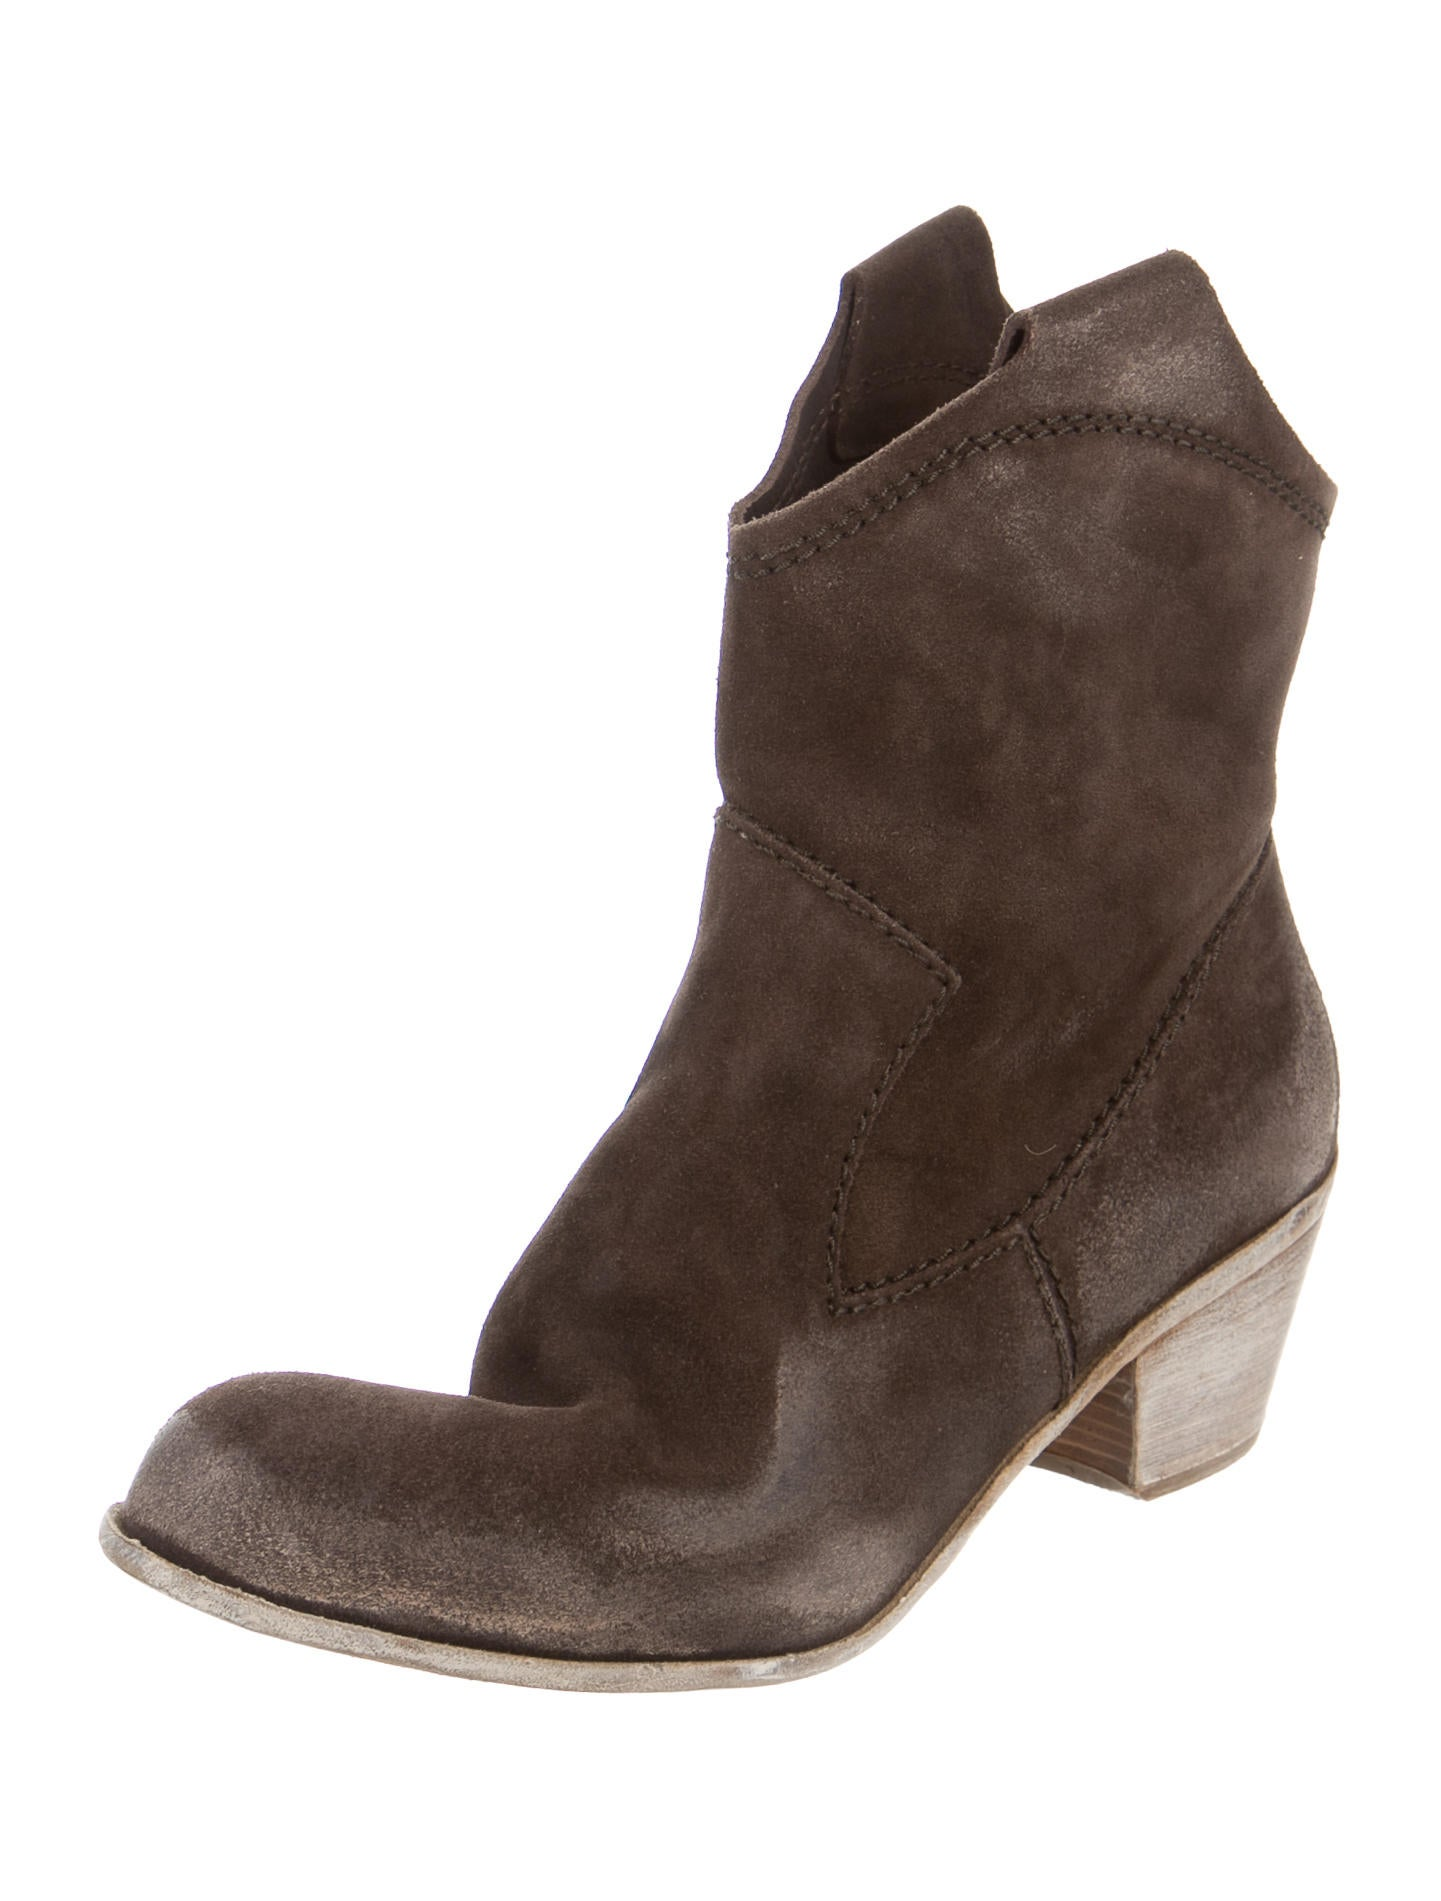 pedro garcia distressed suede ankle boots shoes